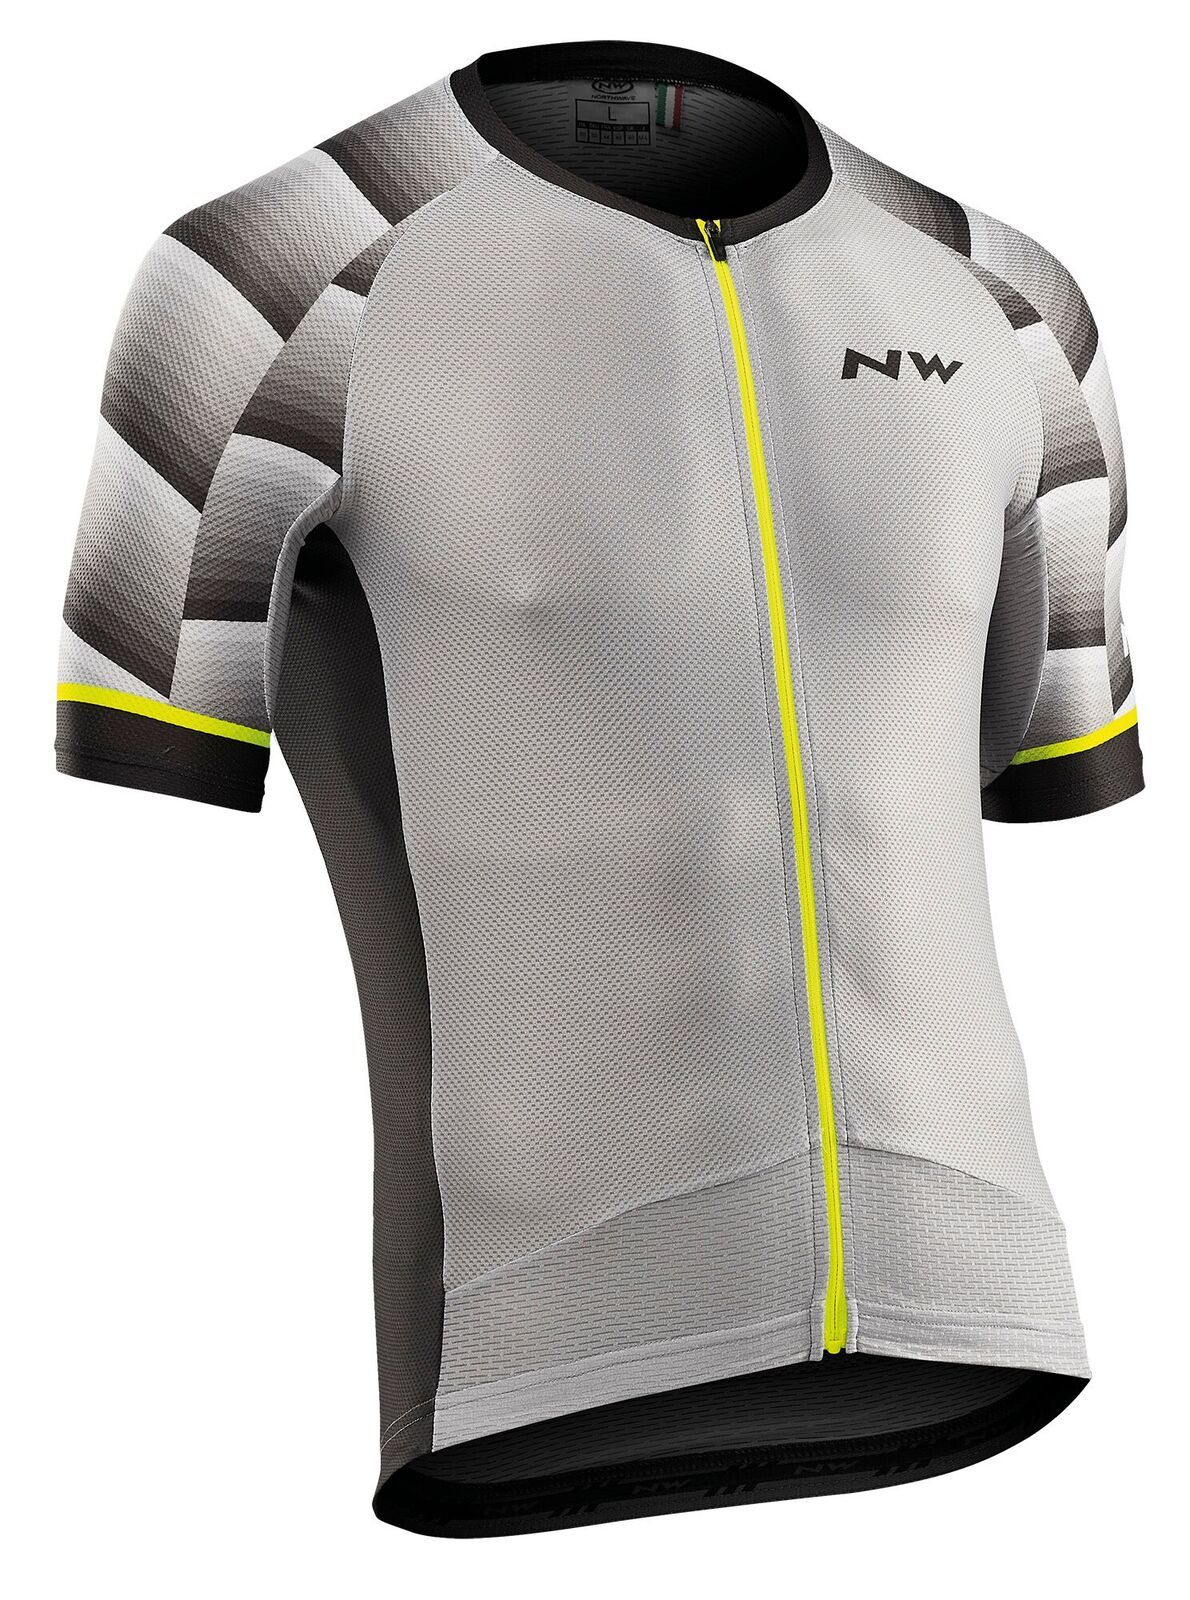 Maglia Ciclismo Maniche Corte Northwave Storm Air Jersey Short Sleeves LIGHT GREY